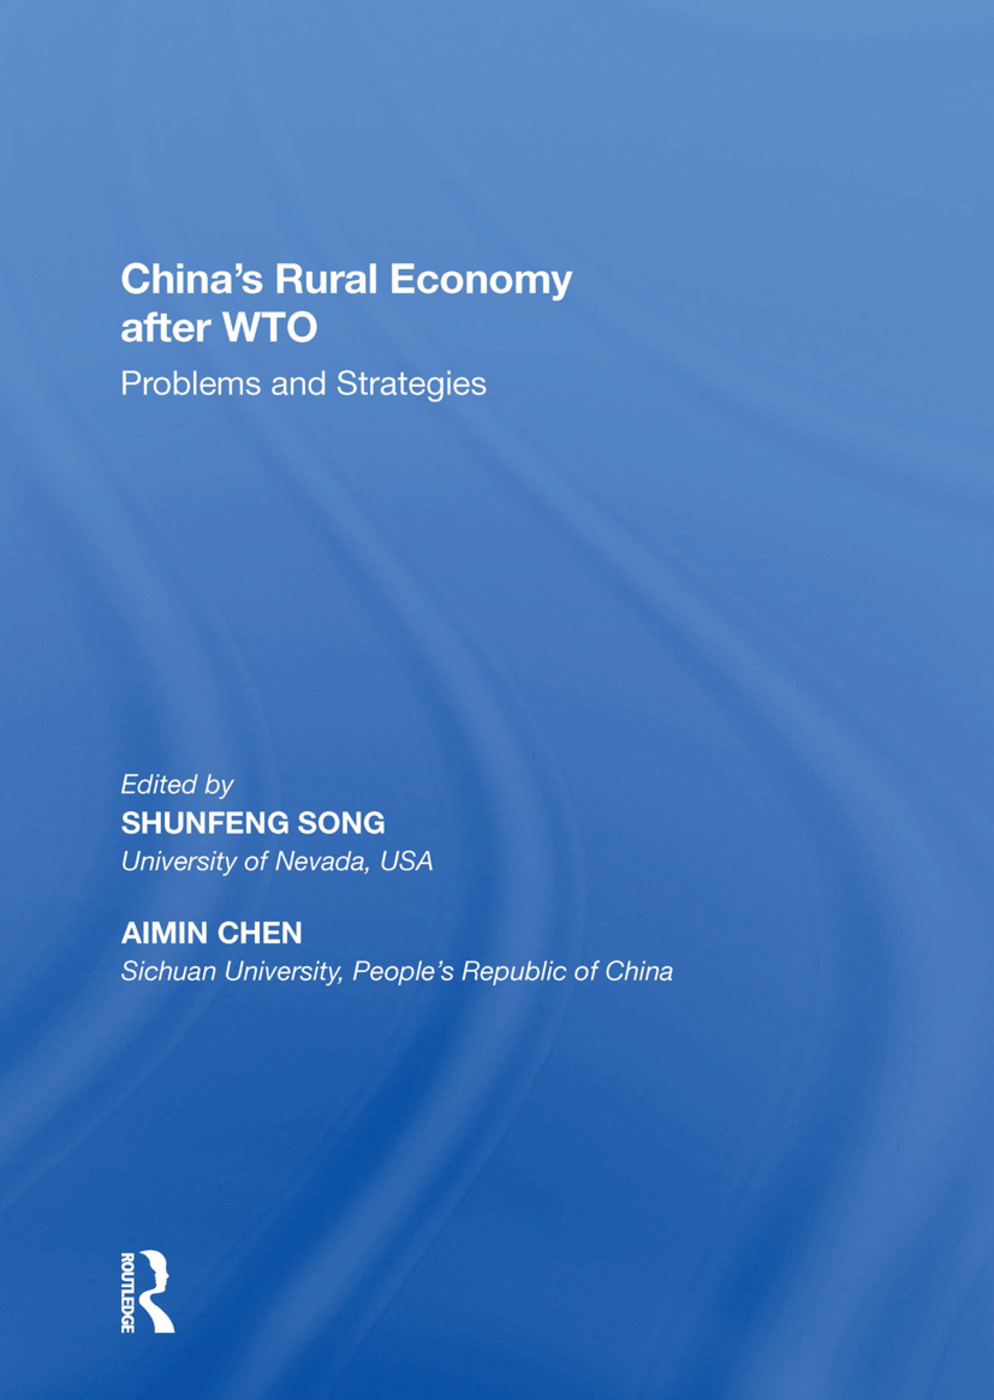 China's Rural Economy after WTO: Problems and Strategies book cover